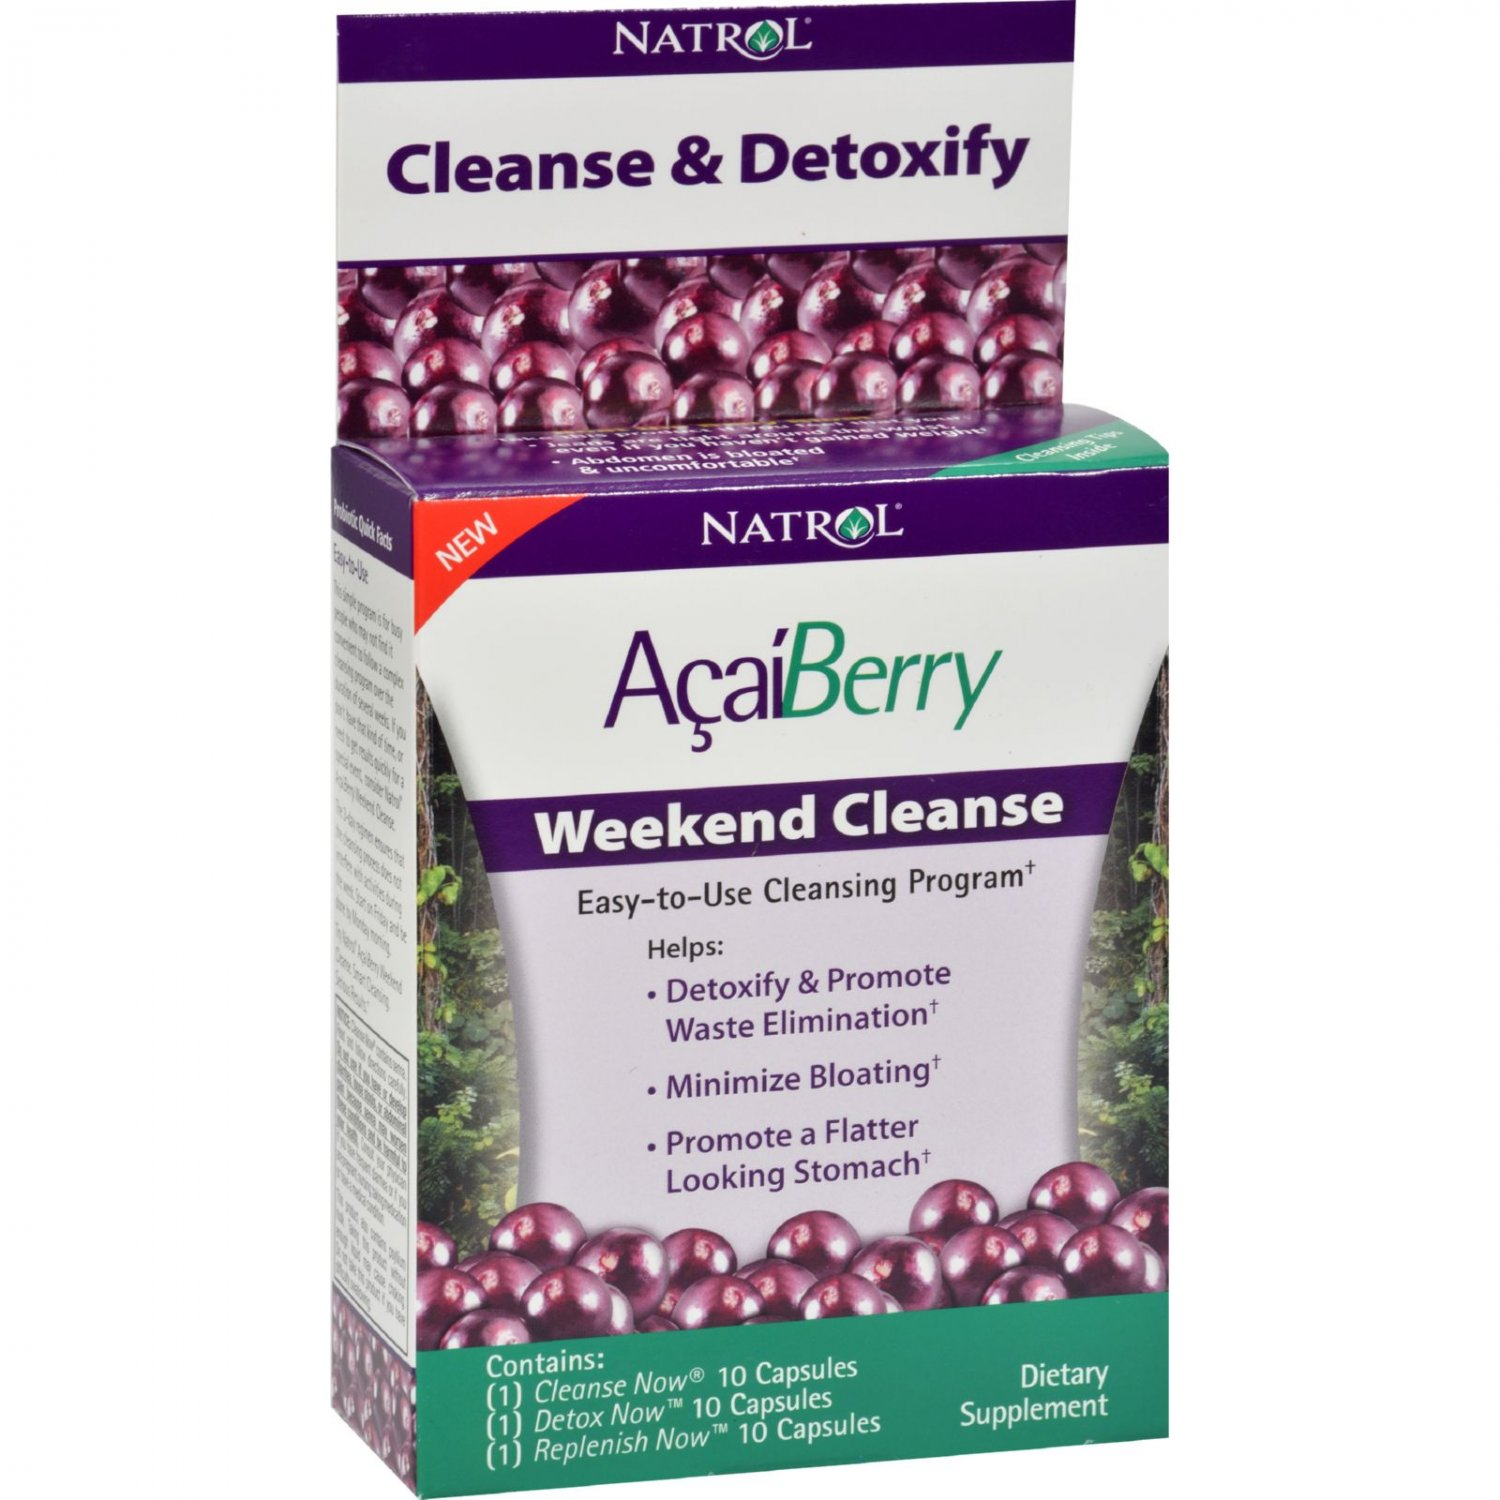 Natrol AcaiBerry Weekend Cleanse - 1 Kit